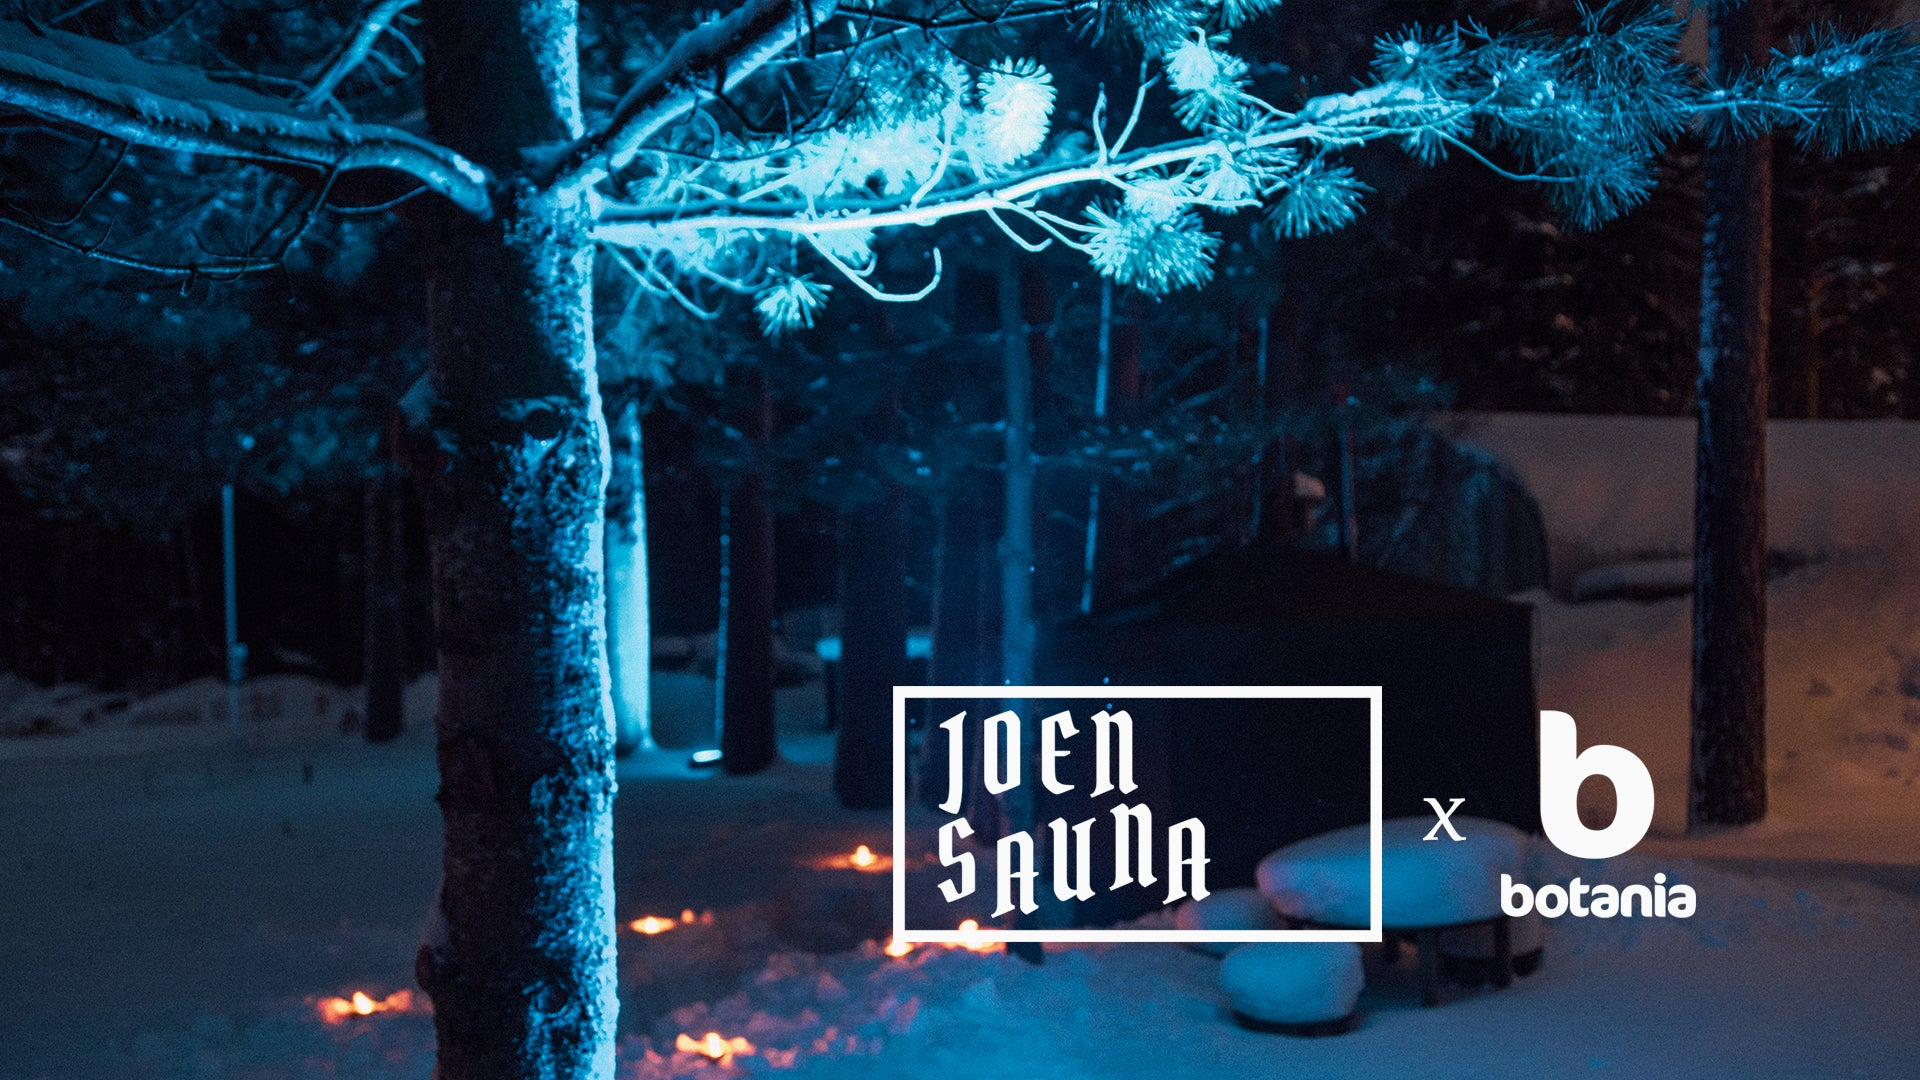 Joensaunan saunamaailma Botanialla on loppuunmyyty! Winter Sauna Experience is sold out!